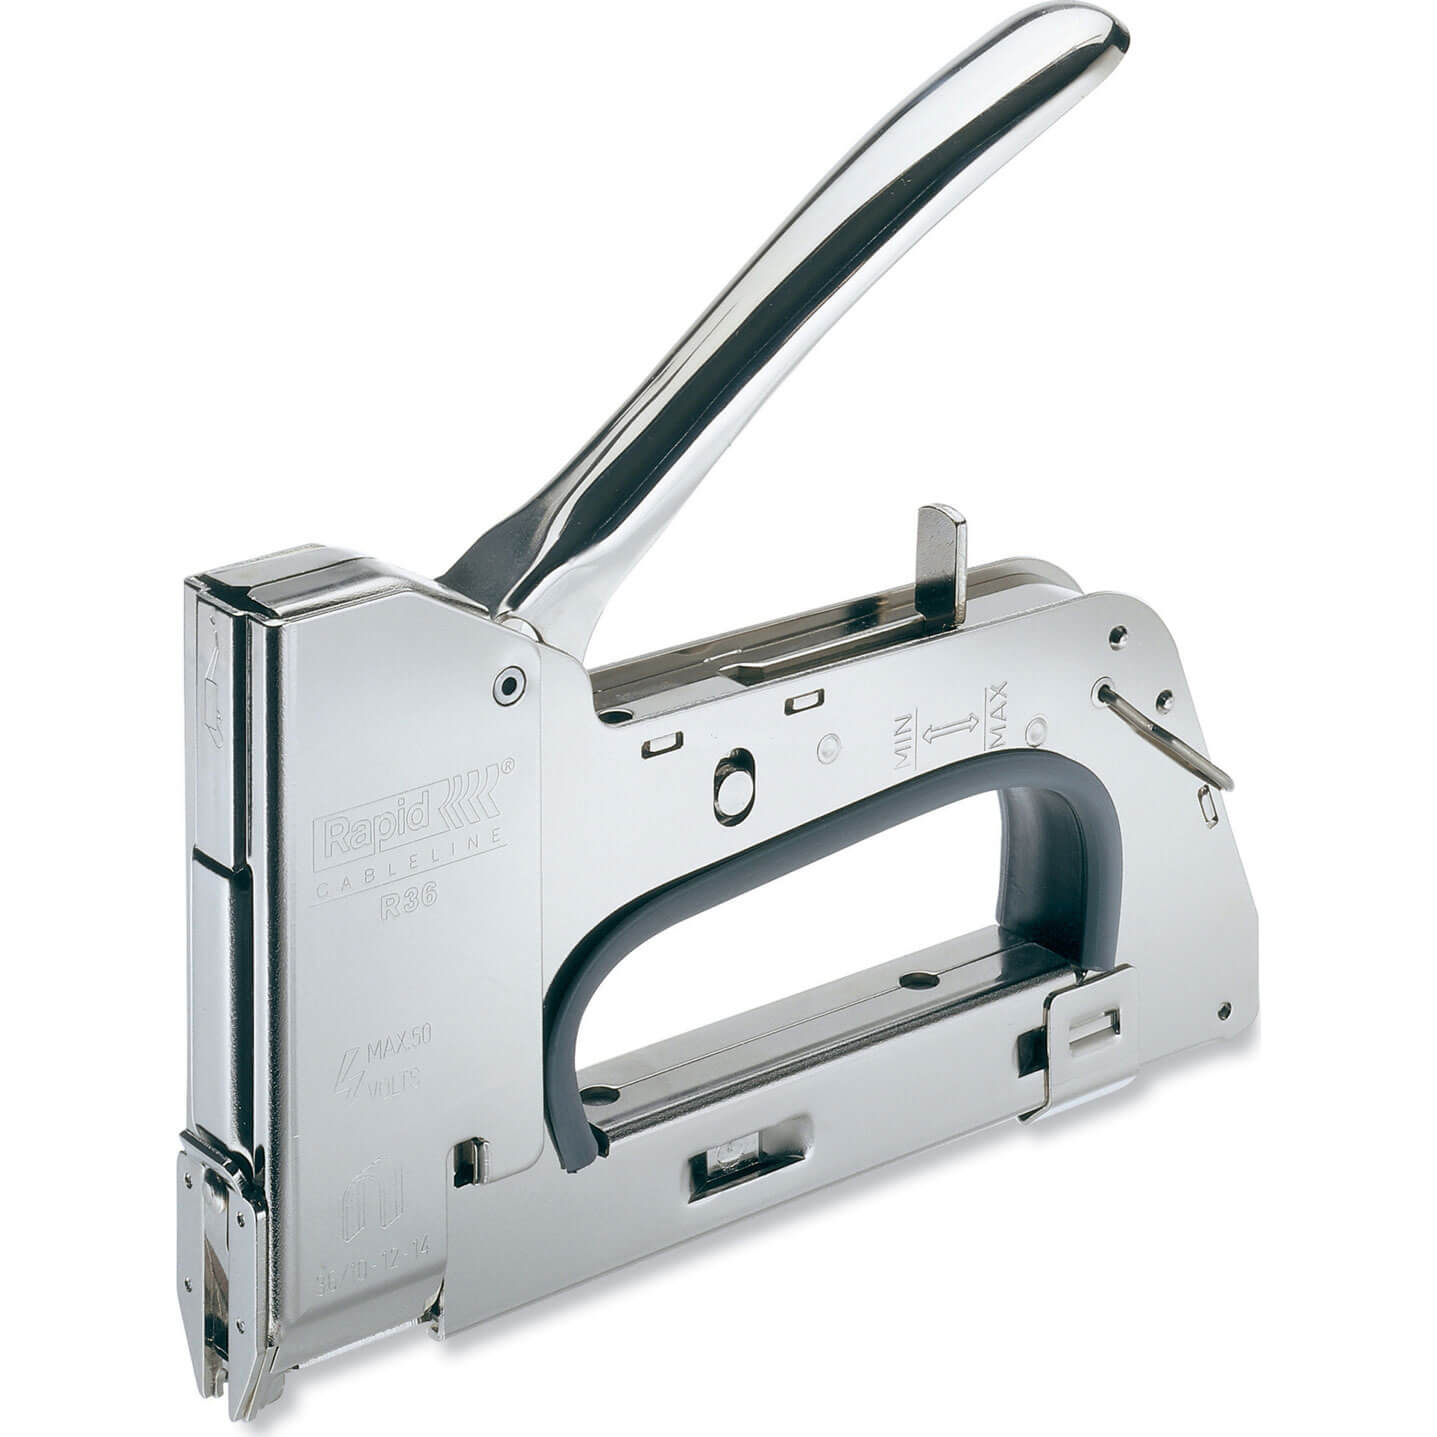 Rapid R36 Heavy Duty Cable Tacker